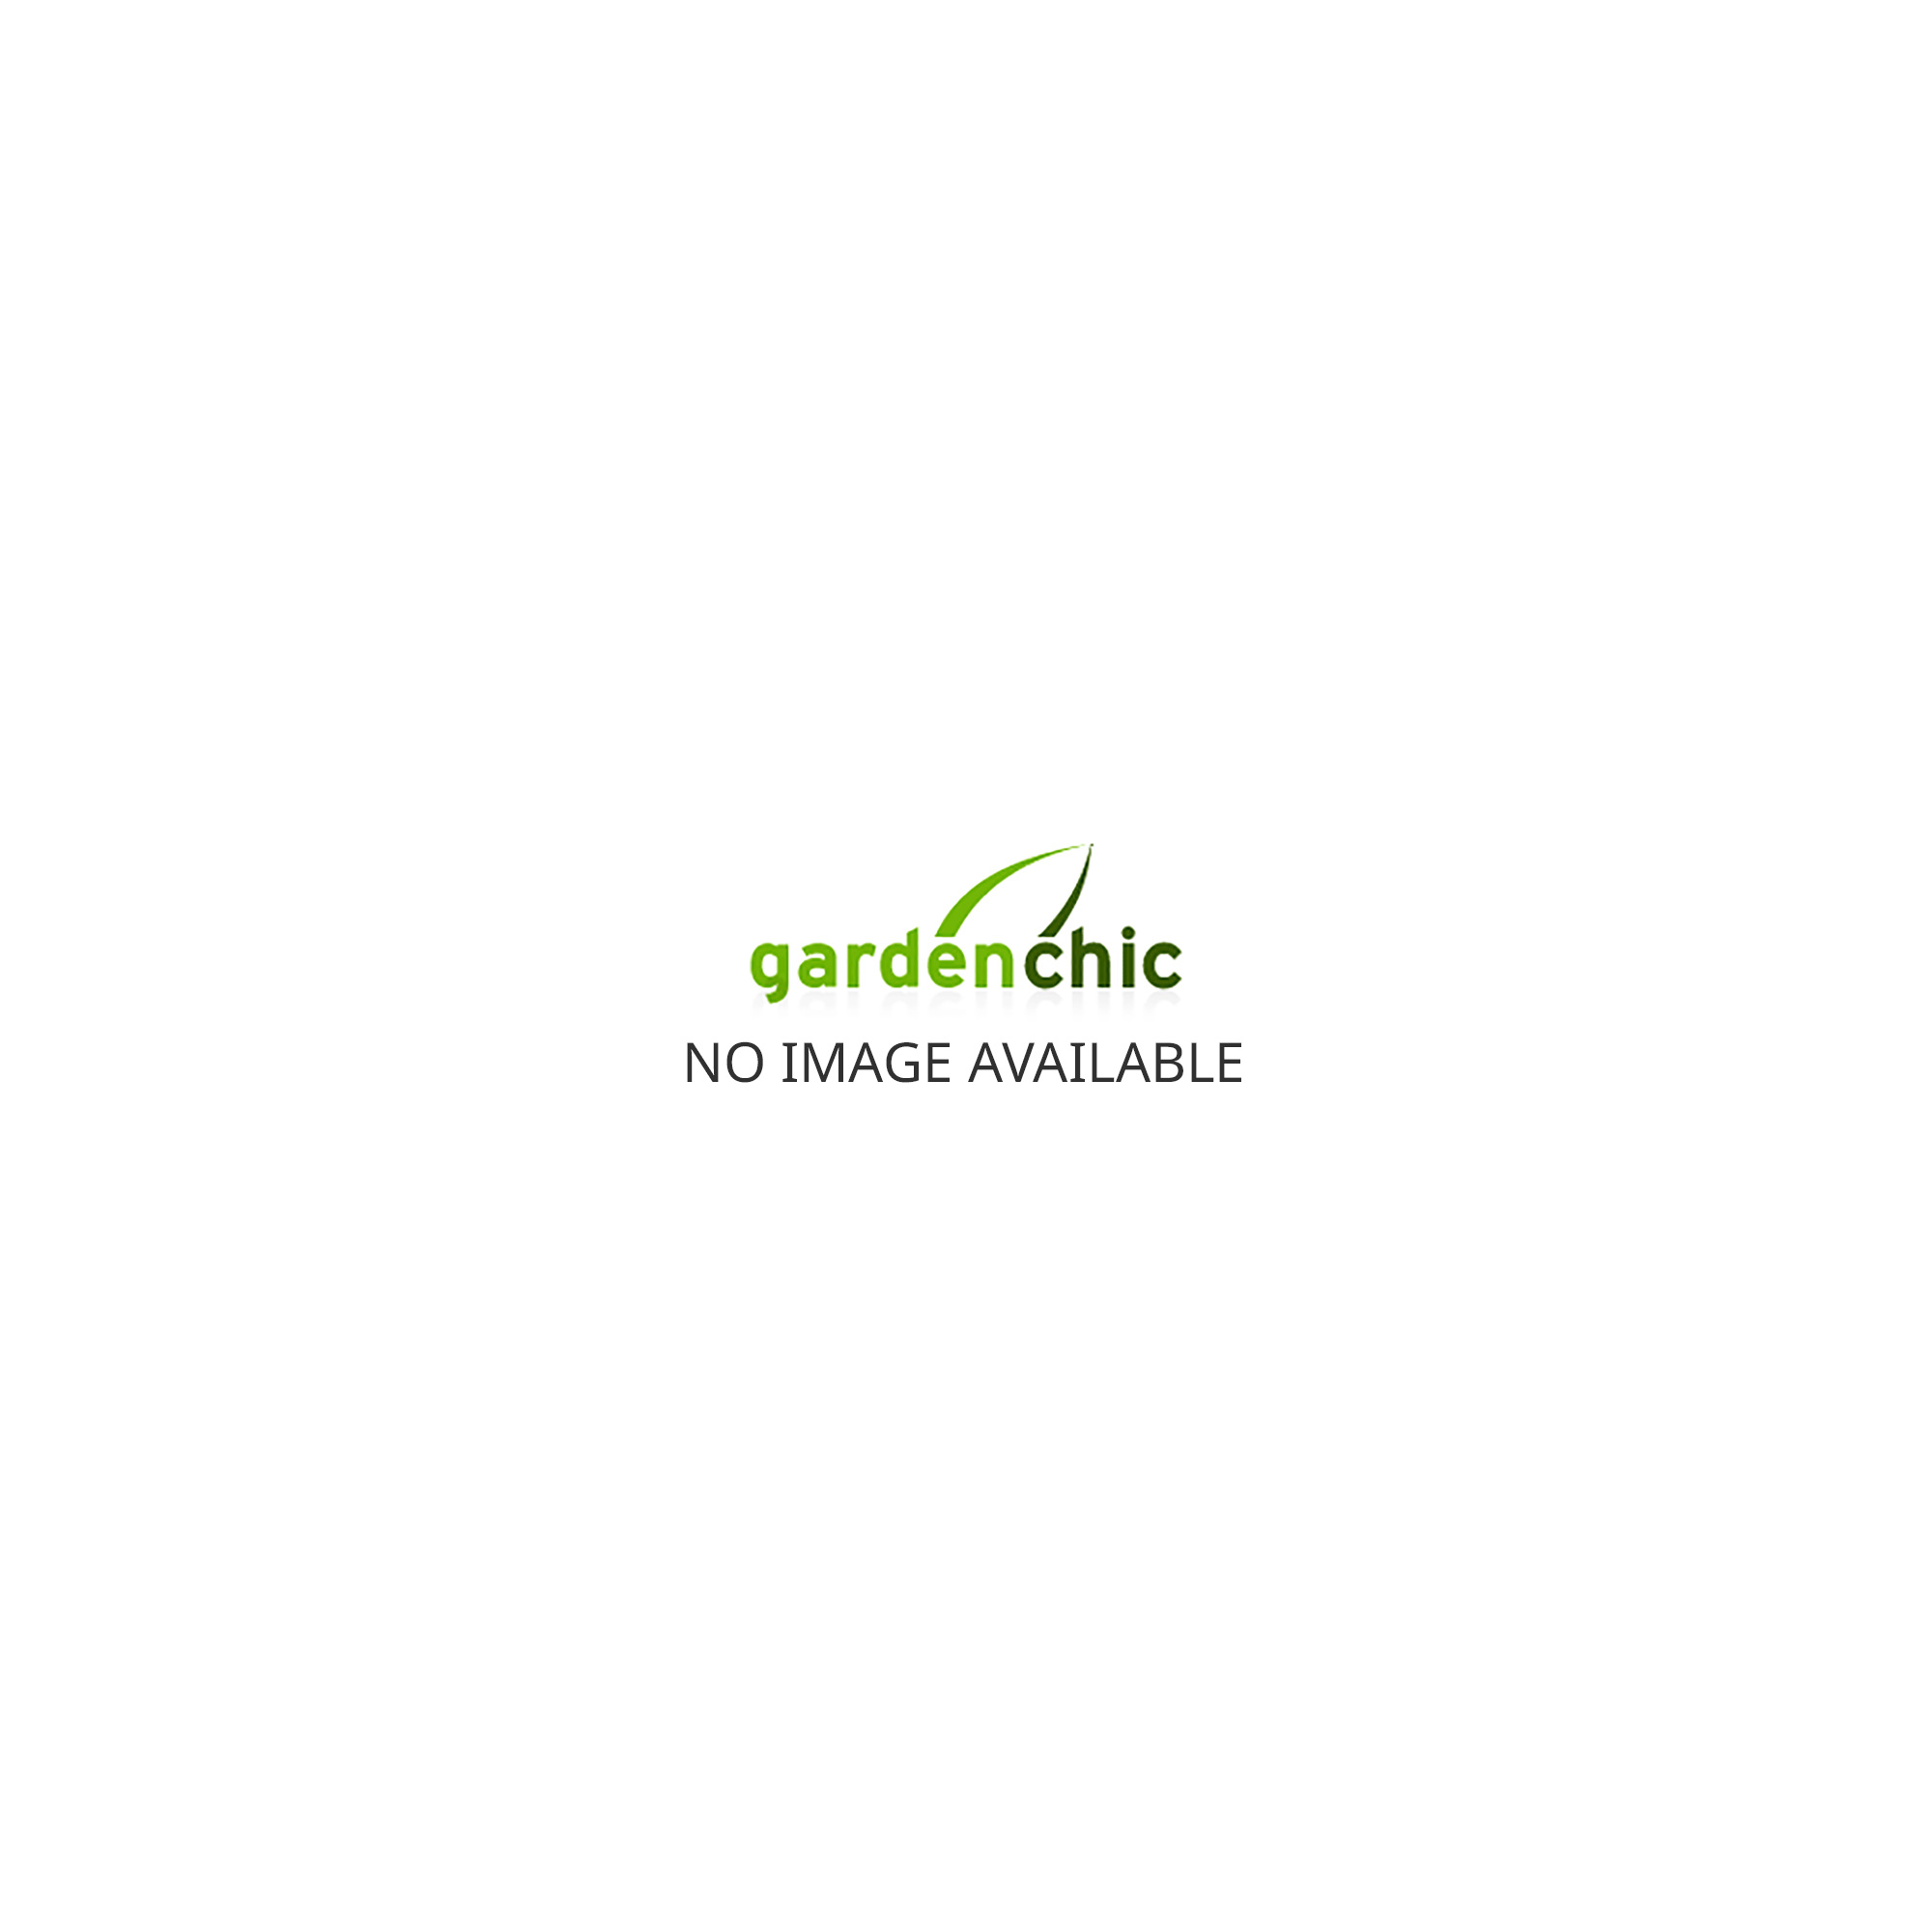 IDA 900 Wall Garden 4ft x 2ft Greenhouse - Green FREE Matching Base until APRIL 2018